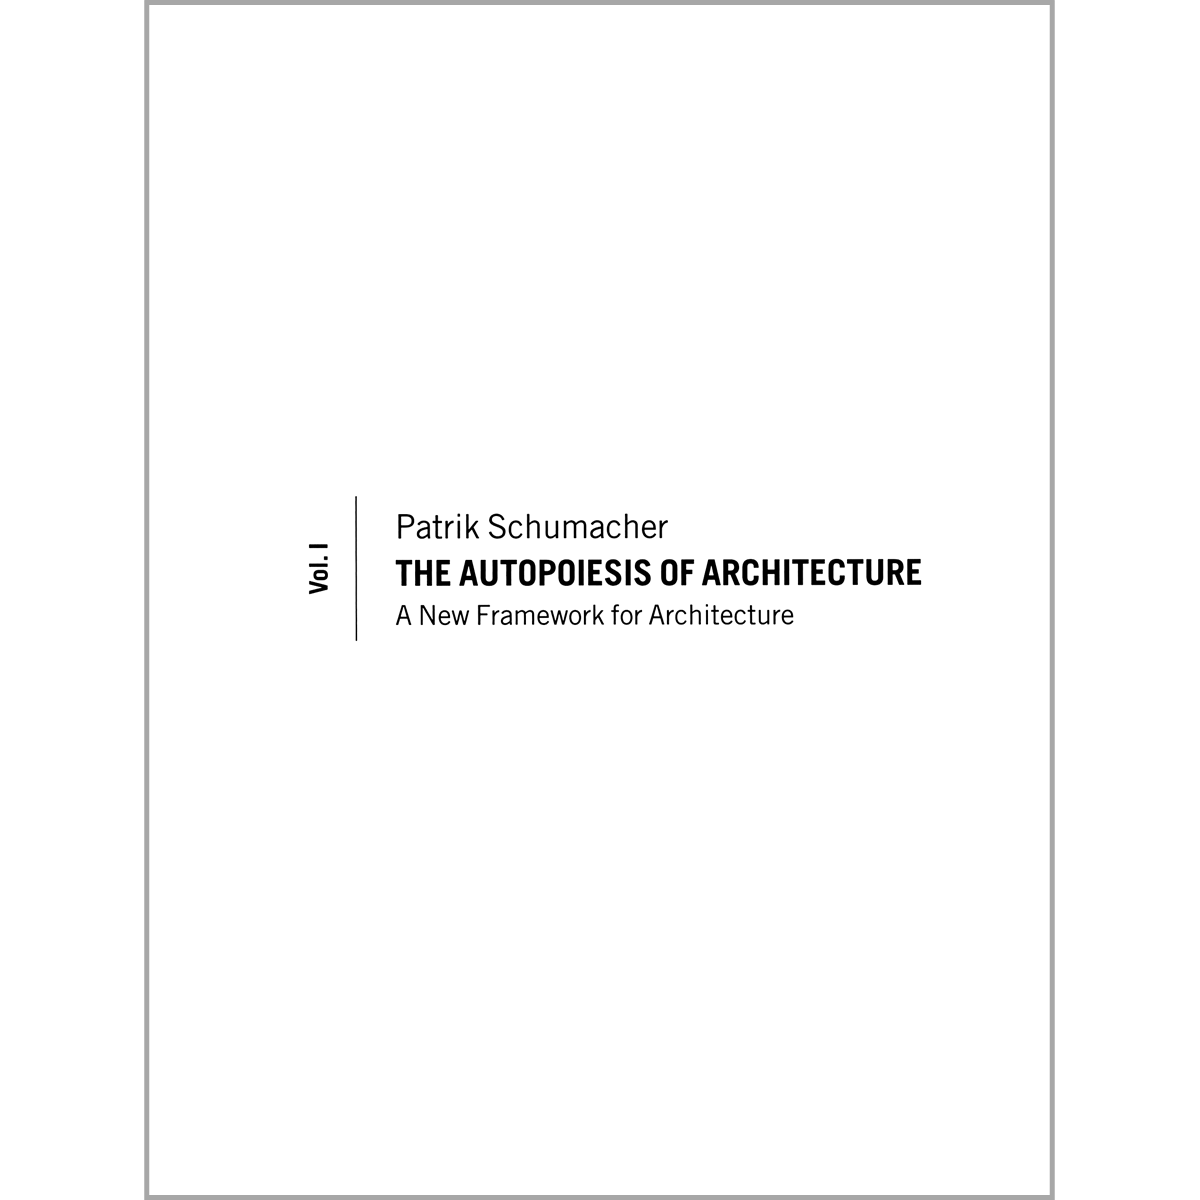 The Autopoiesis of Architecture